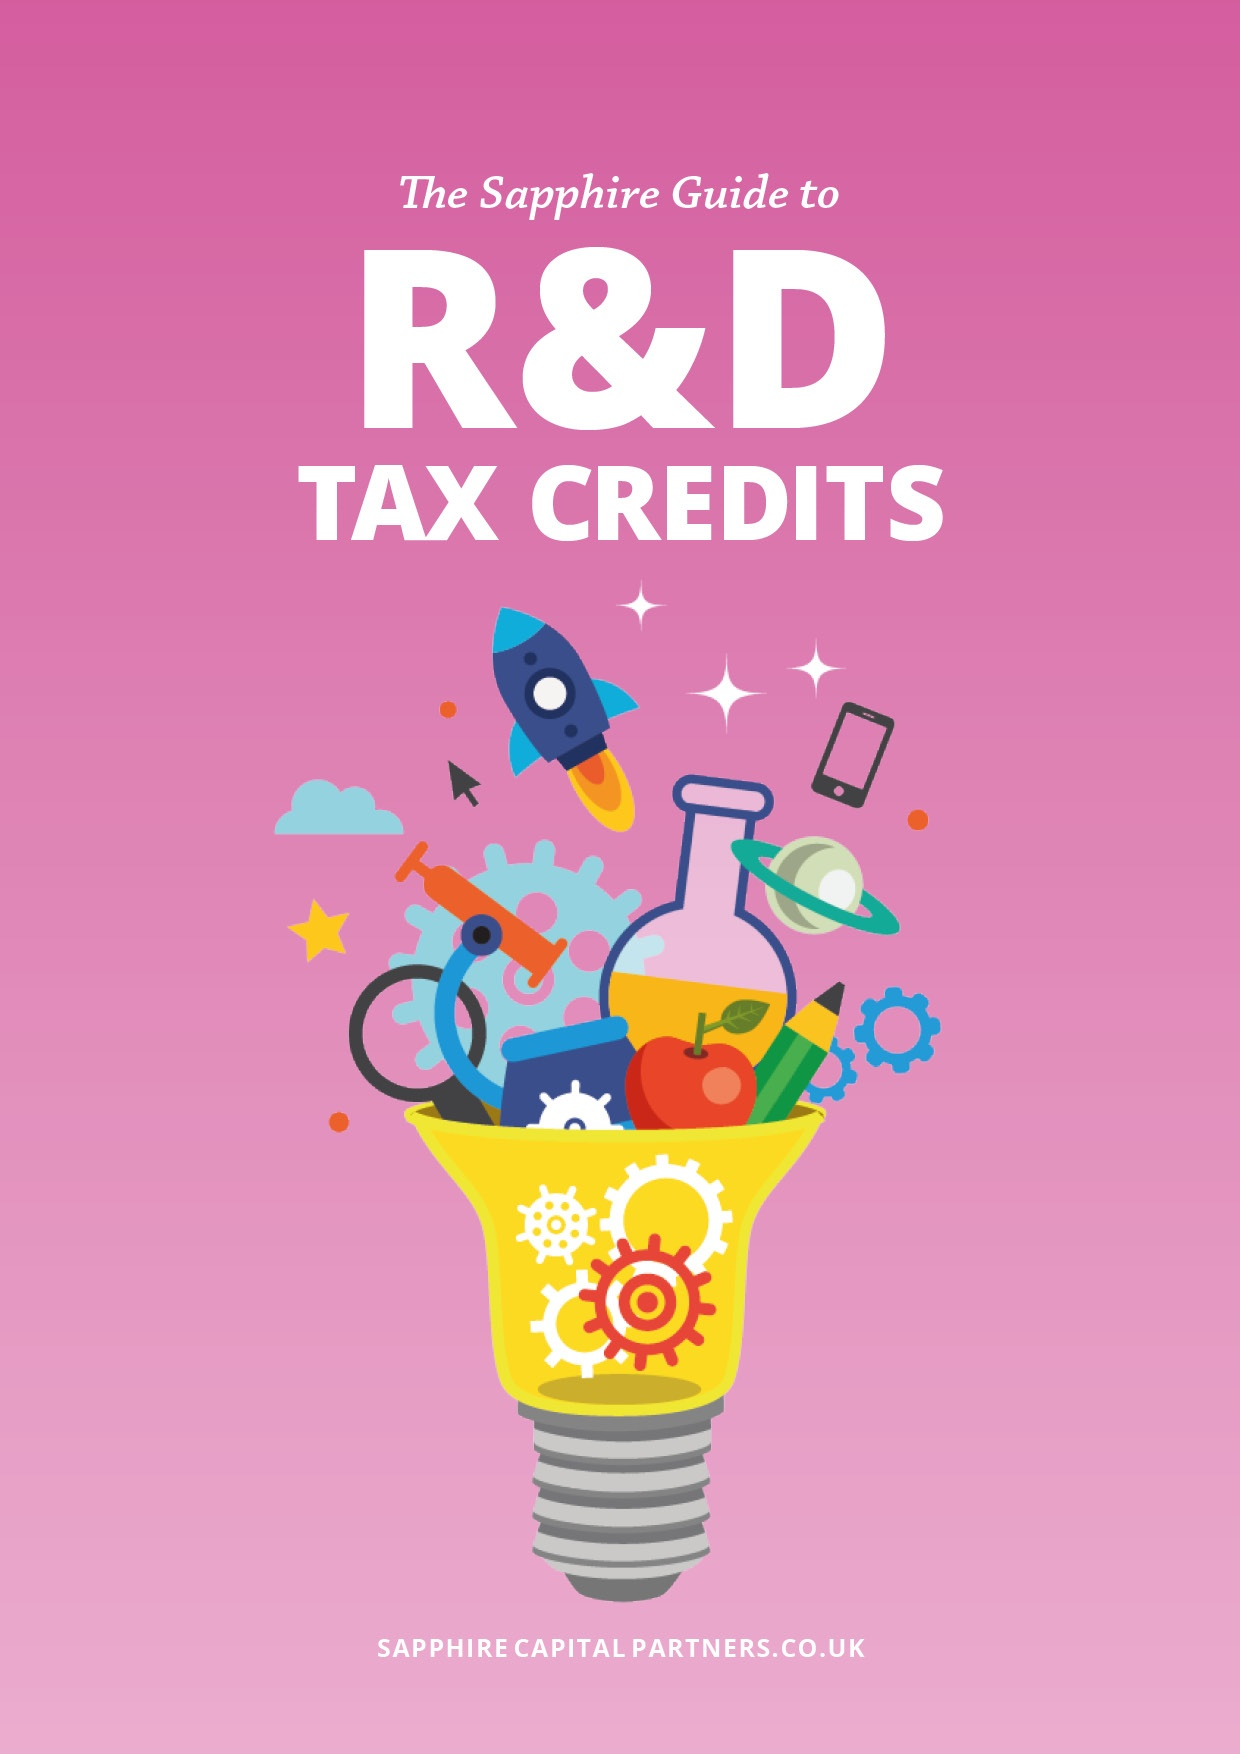 The Sapphire Guide to R&D Tax Credits eBook cover